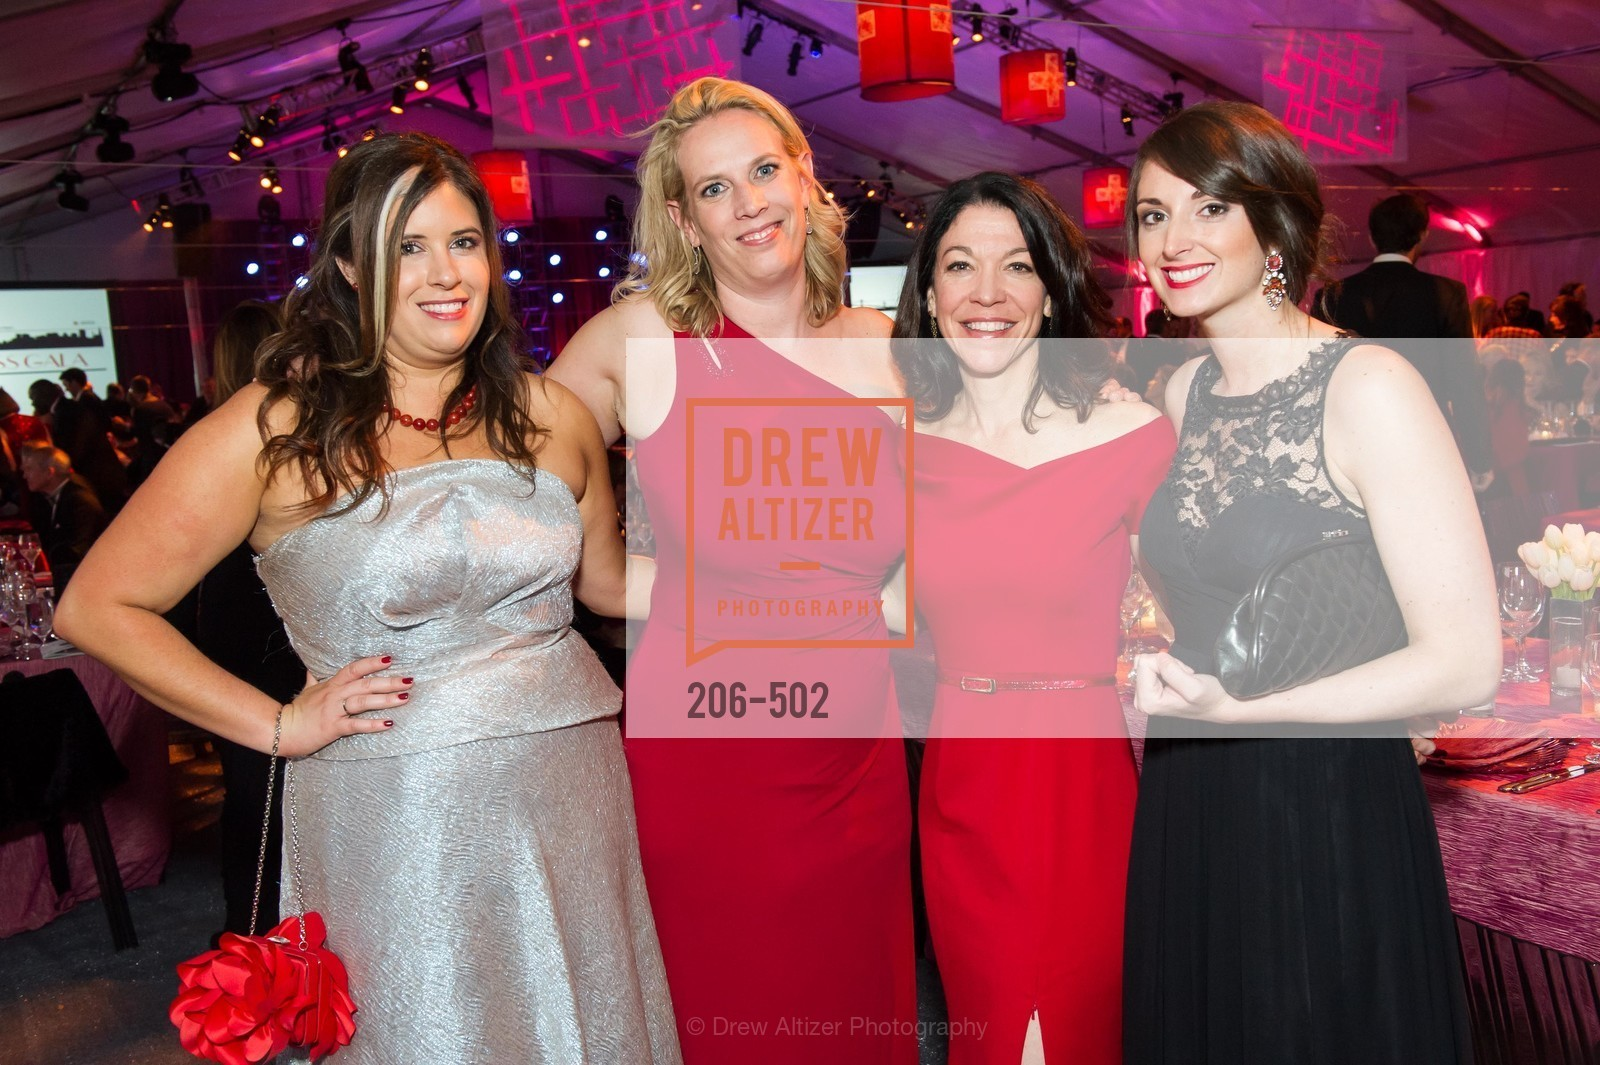 Ashley de Smeth, Erin Gore, Lisa DeCarlo, Madison Ginnett, 2014 RED CROSS Gala Honoring Paula Downey as the American Red Cross Bay Area Chapter Humanitarian CEO of the Year, US. Treasure Island (The Great Lawn), April 5th, 2014,Drew Altizer, Drew Altizer Photography, full-service agency, private events, San Francisco photographer, photographer california